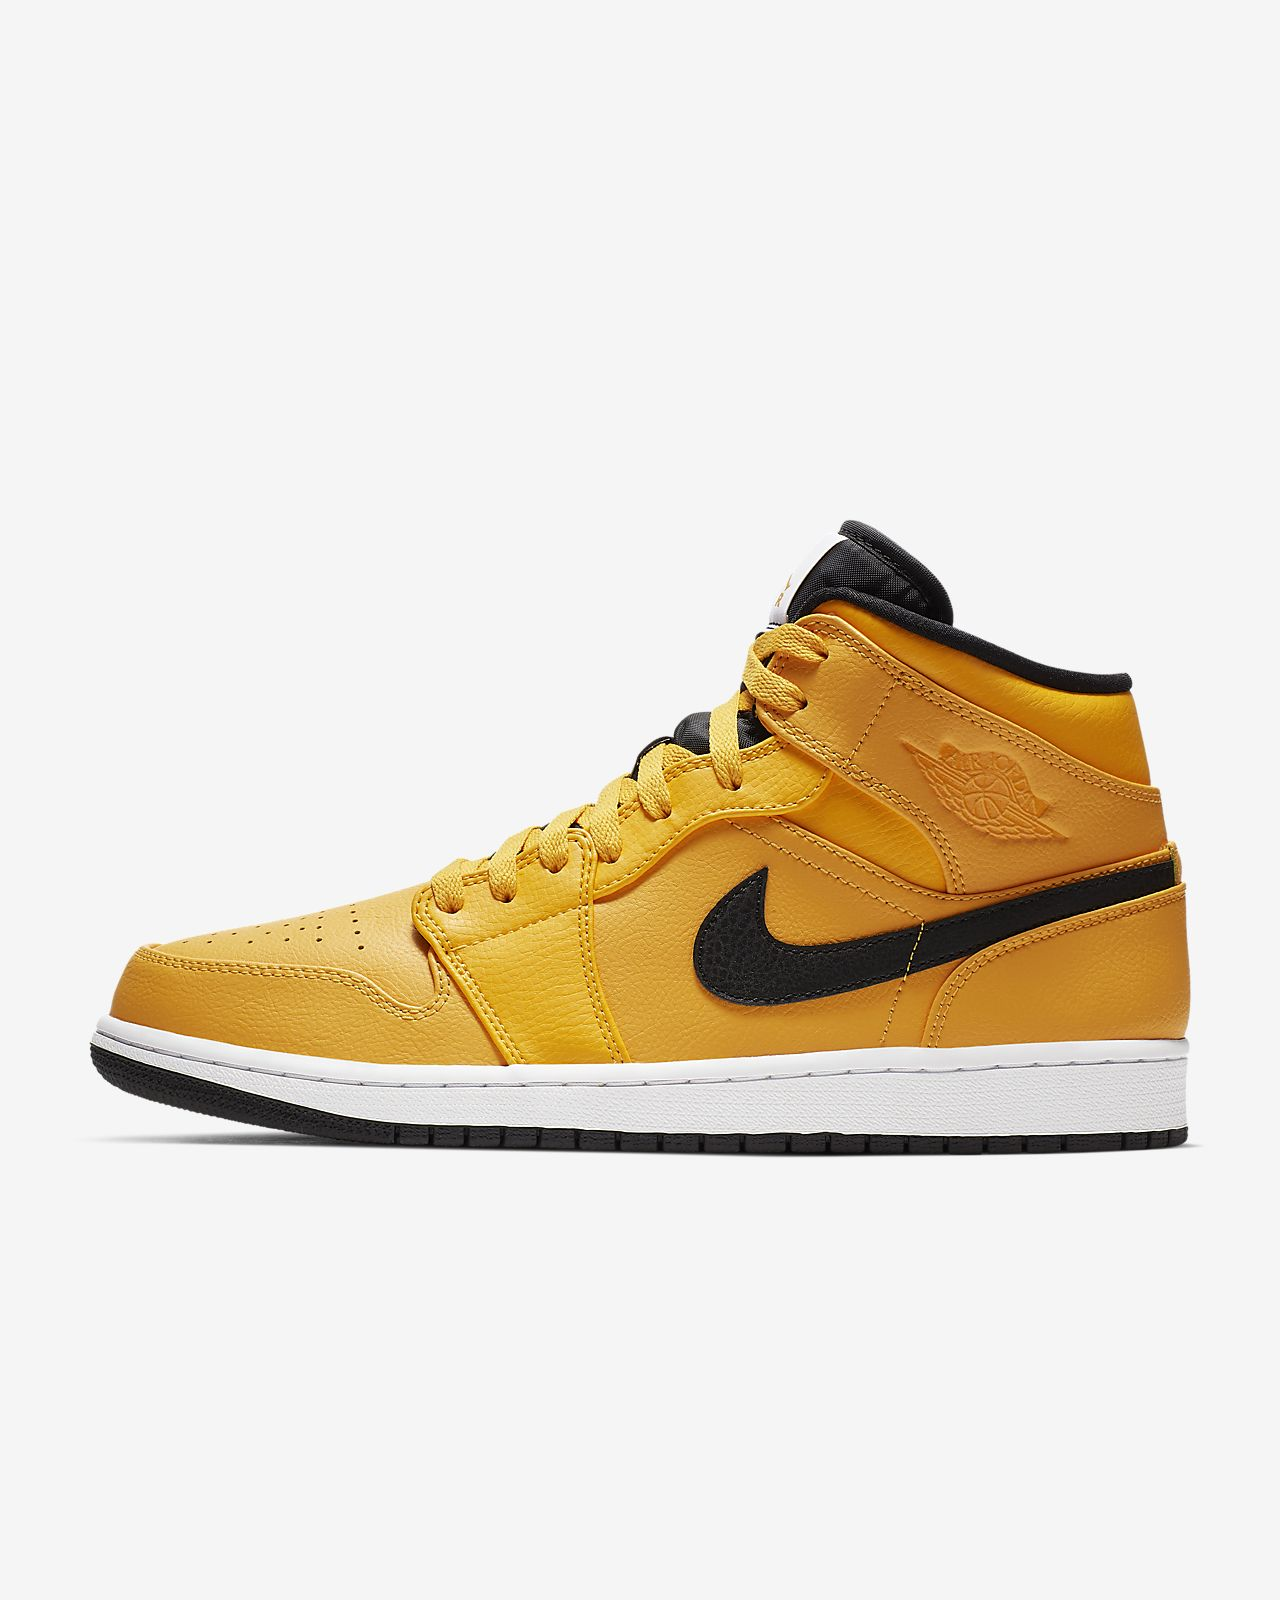 pick up 9da6b 02003 ... Air Jordan 1 Mid Men s Shoe